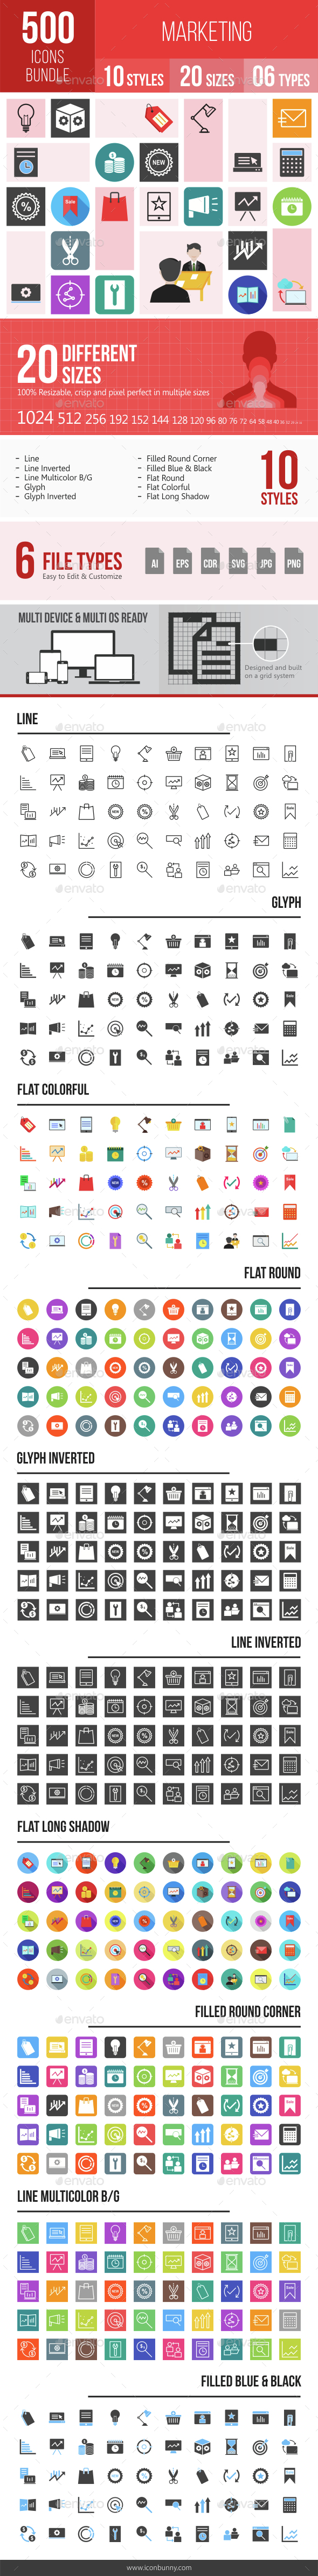 500 Marketing Icons Bundle - Icons